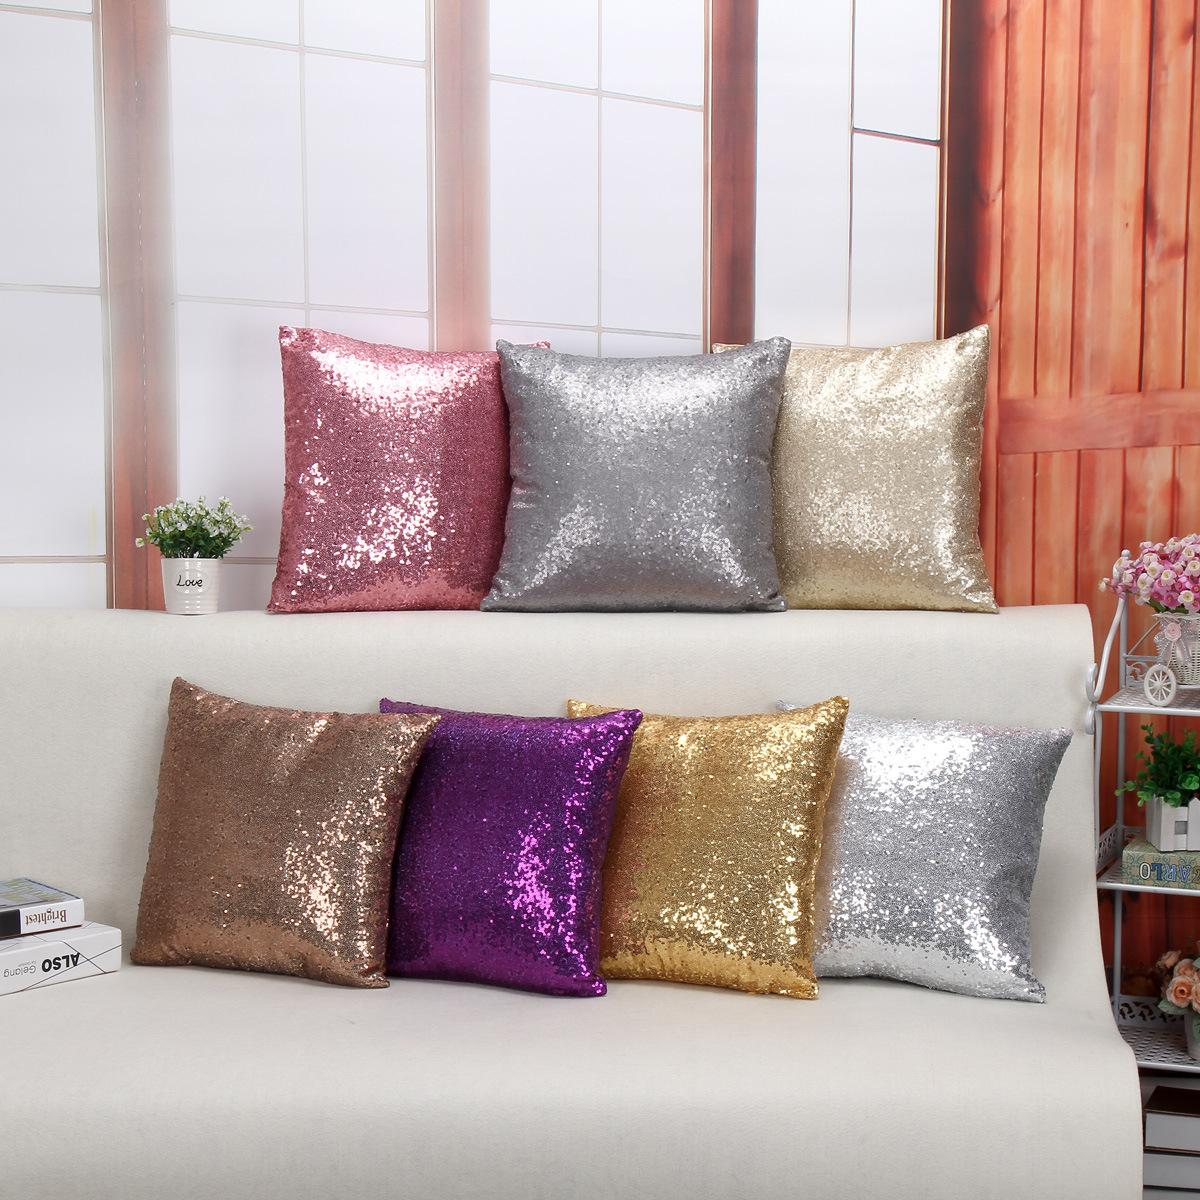 Cool Sequin Cushion Cover Magical Pink Throw Pillowcase 40cmx40cm Sofa  Cover Decorative Pillow Case Cushions For Outdoor Wicker Furniture Best  Outdoor ...